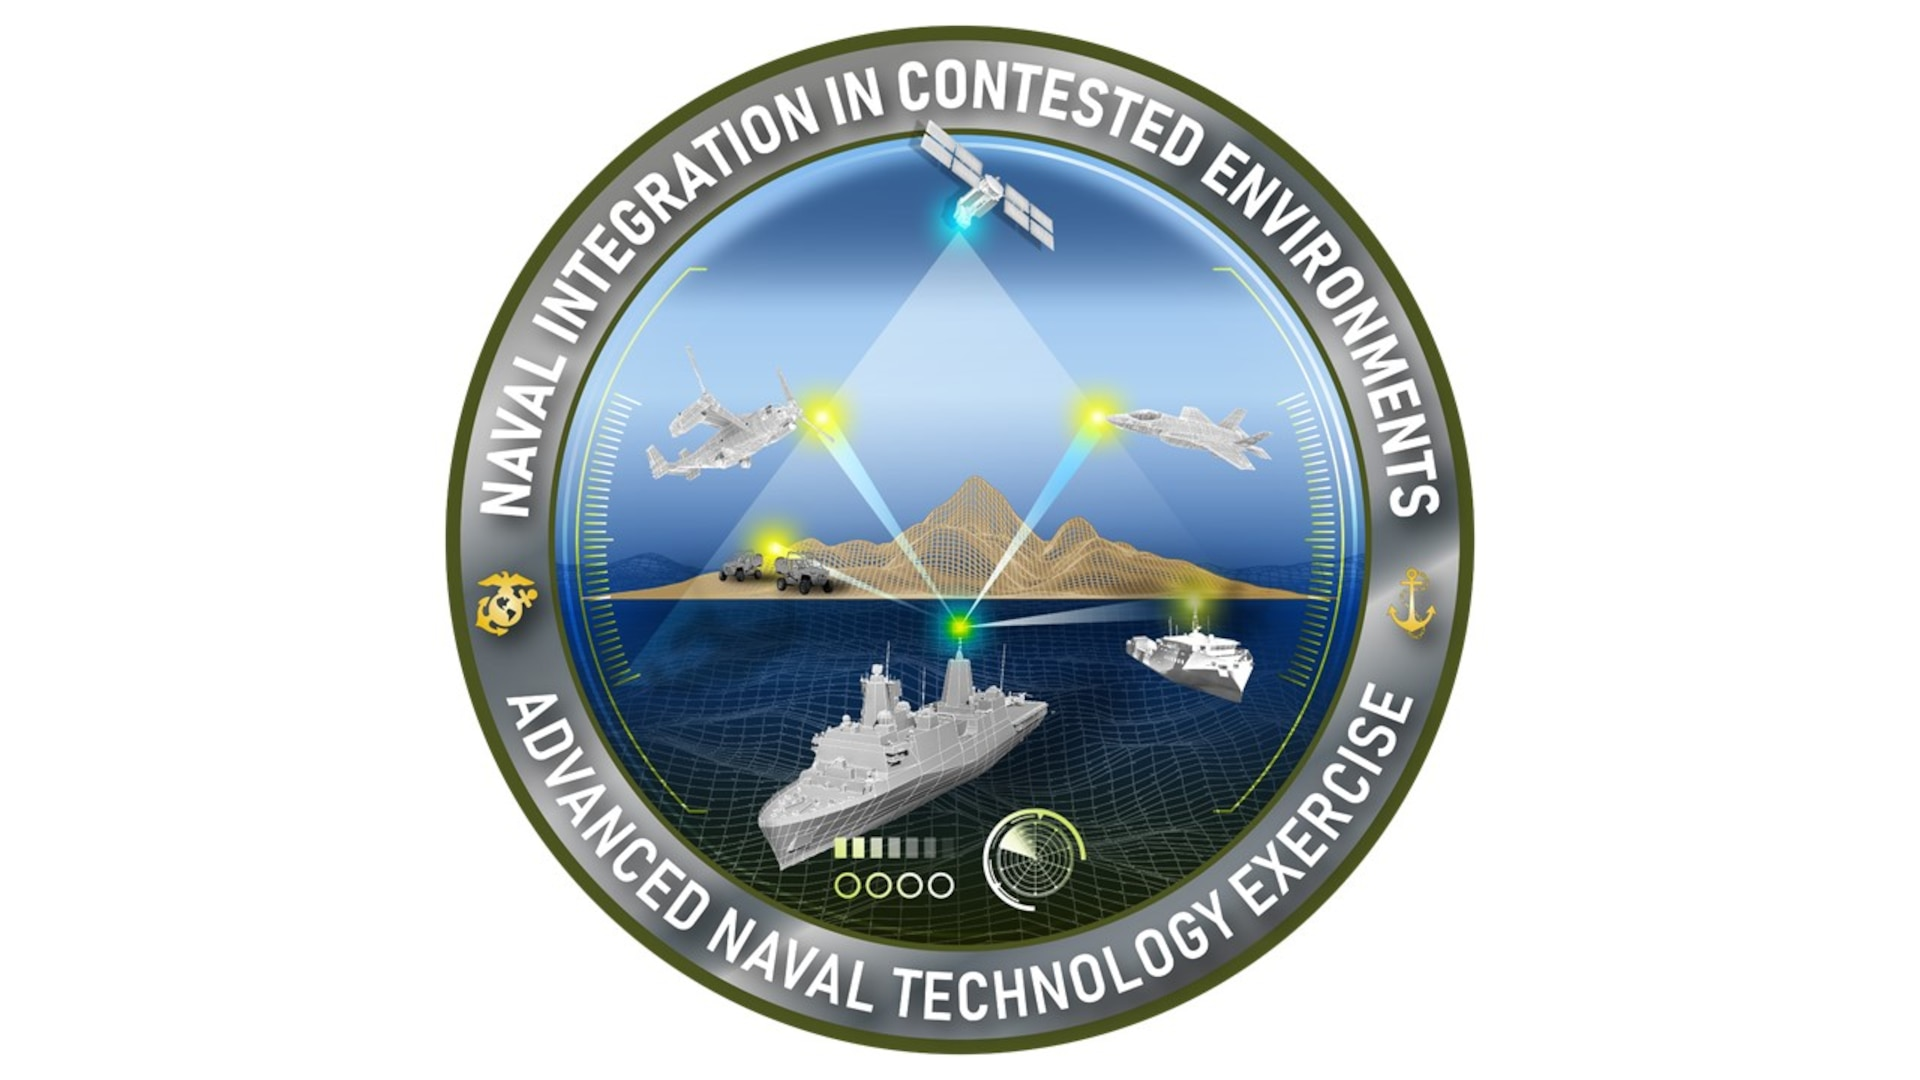 Naval Surface Warfare Center, Crane Division (NSWC Crane) and Naval Information Warfare Center (NIWC) Atlantic are seeking the latest technology from industry, academia, and government for the Naval Integration in Contested Environments (NICE) Advanced Naval Technology Exercise (ANTX) 2021.